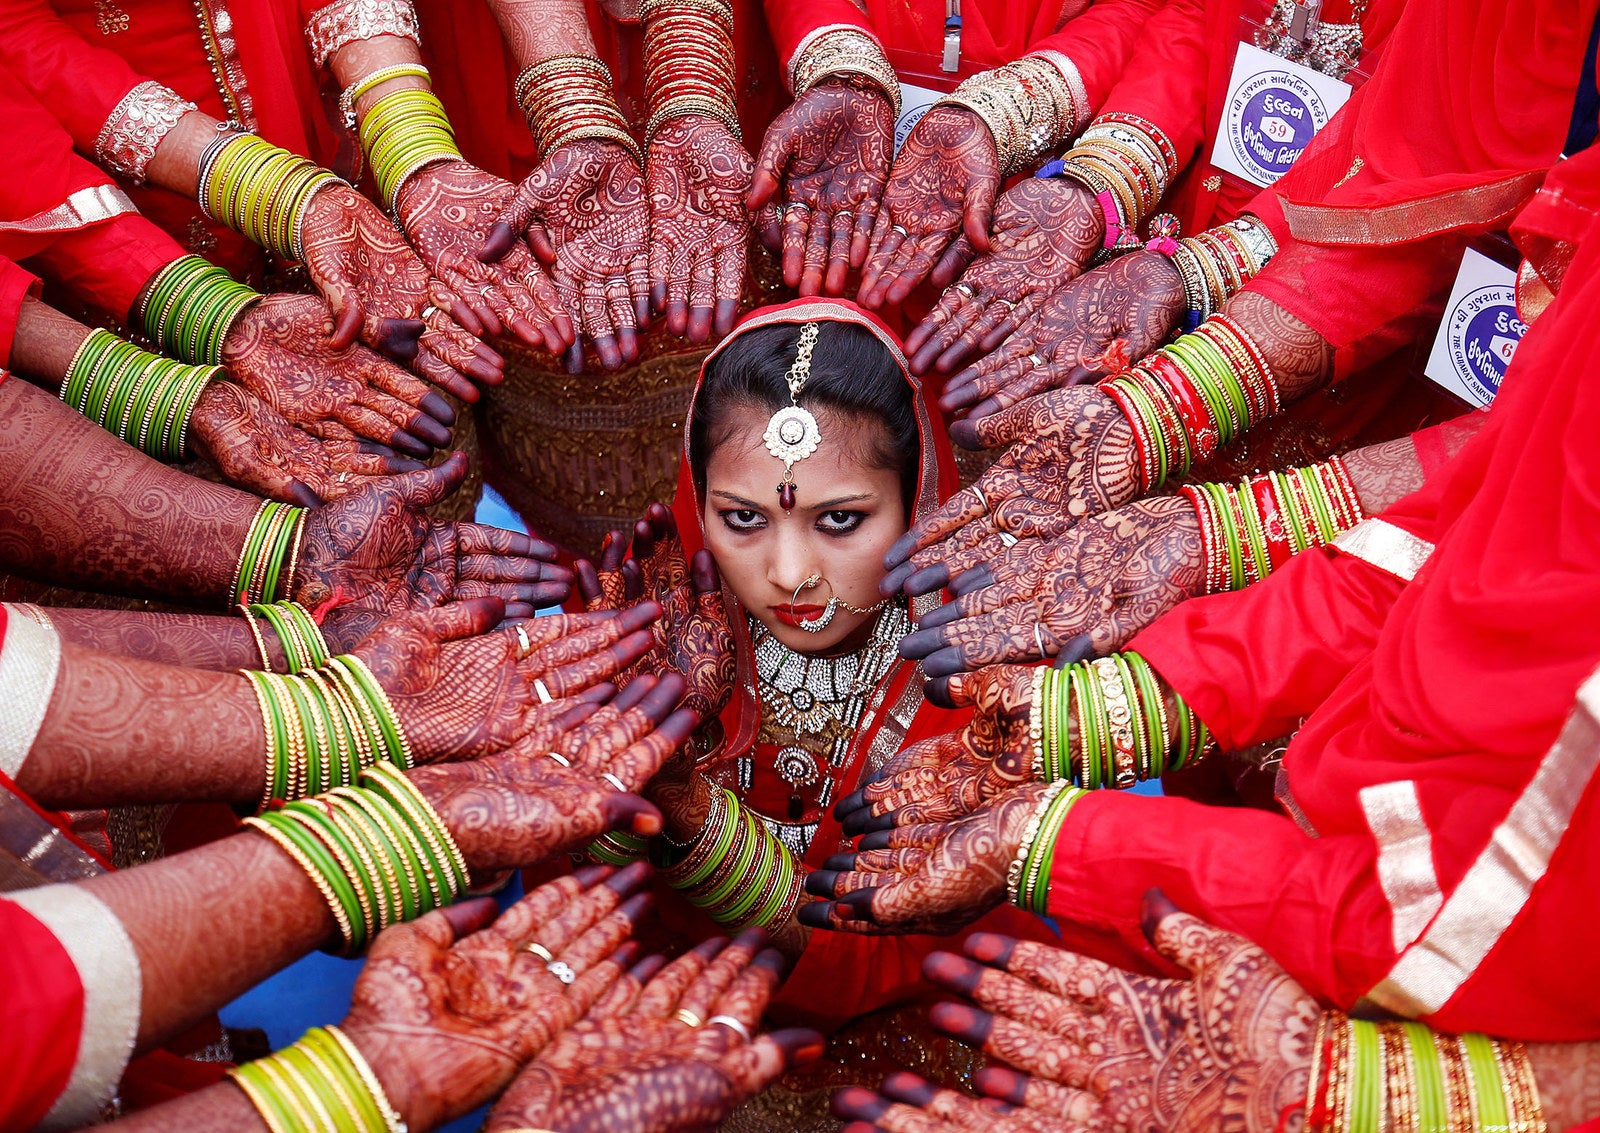 Brides display their hands decorated with henna during a mass marriage ceremony in which, according to its organizers, 70 Muslim couples took their wedding vows in Ahmedabad, India, on Feb. 11.